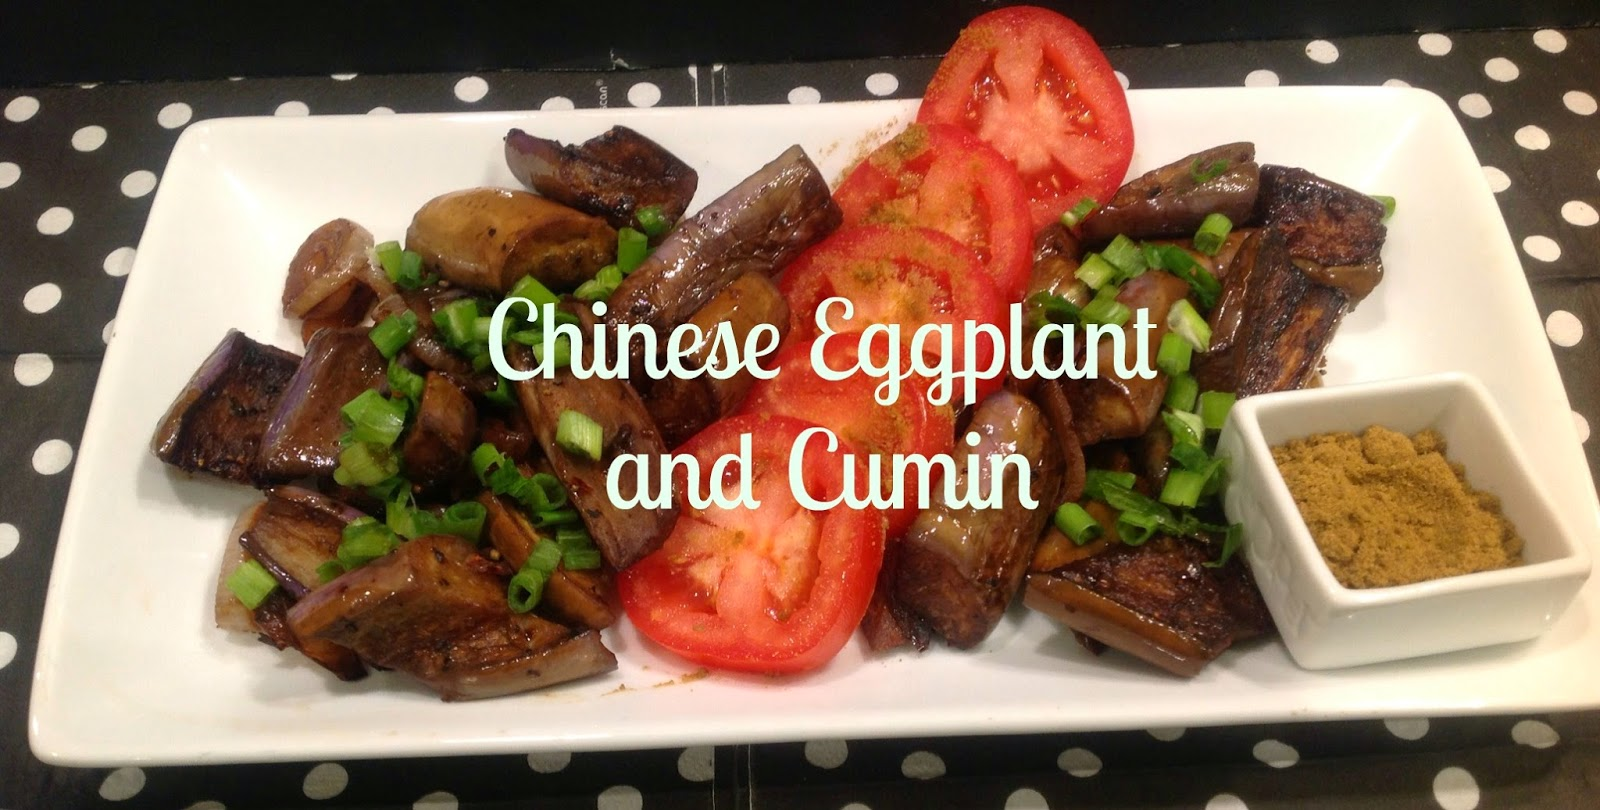 chinese eggplant, tomatoes, and green onion on a plate with a container of cumin